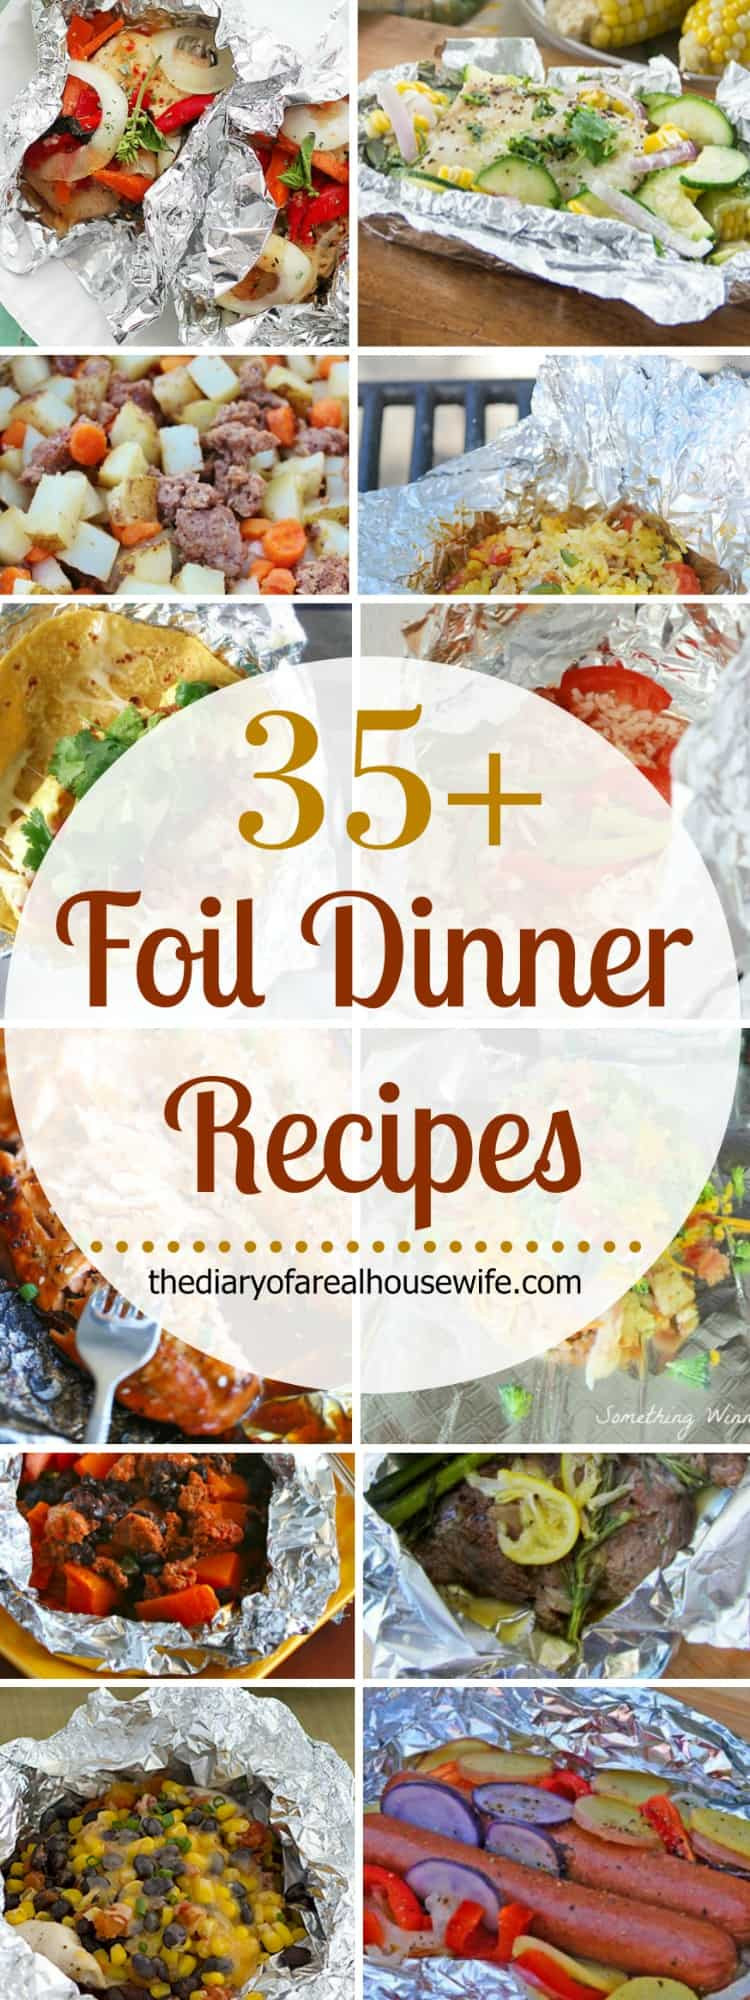 Awesome Dinner Ideas  Foil Dinner Recipes The Diary of a Real Housewife